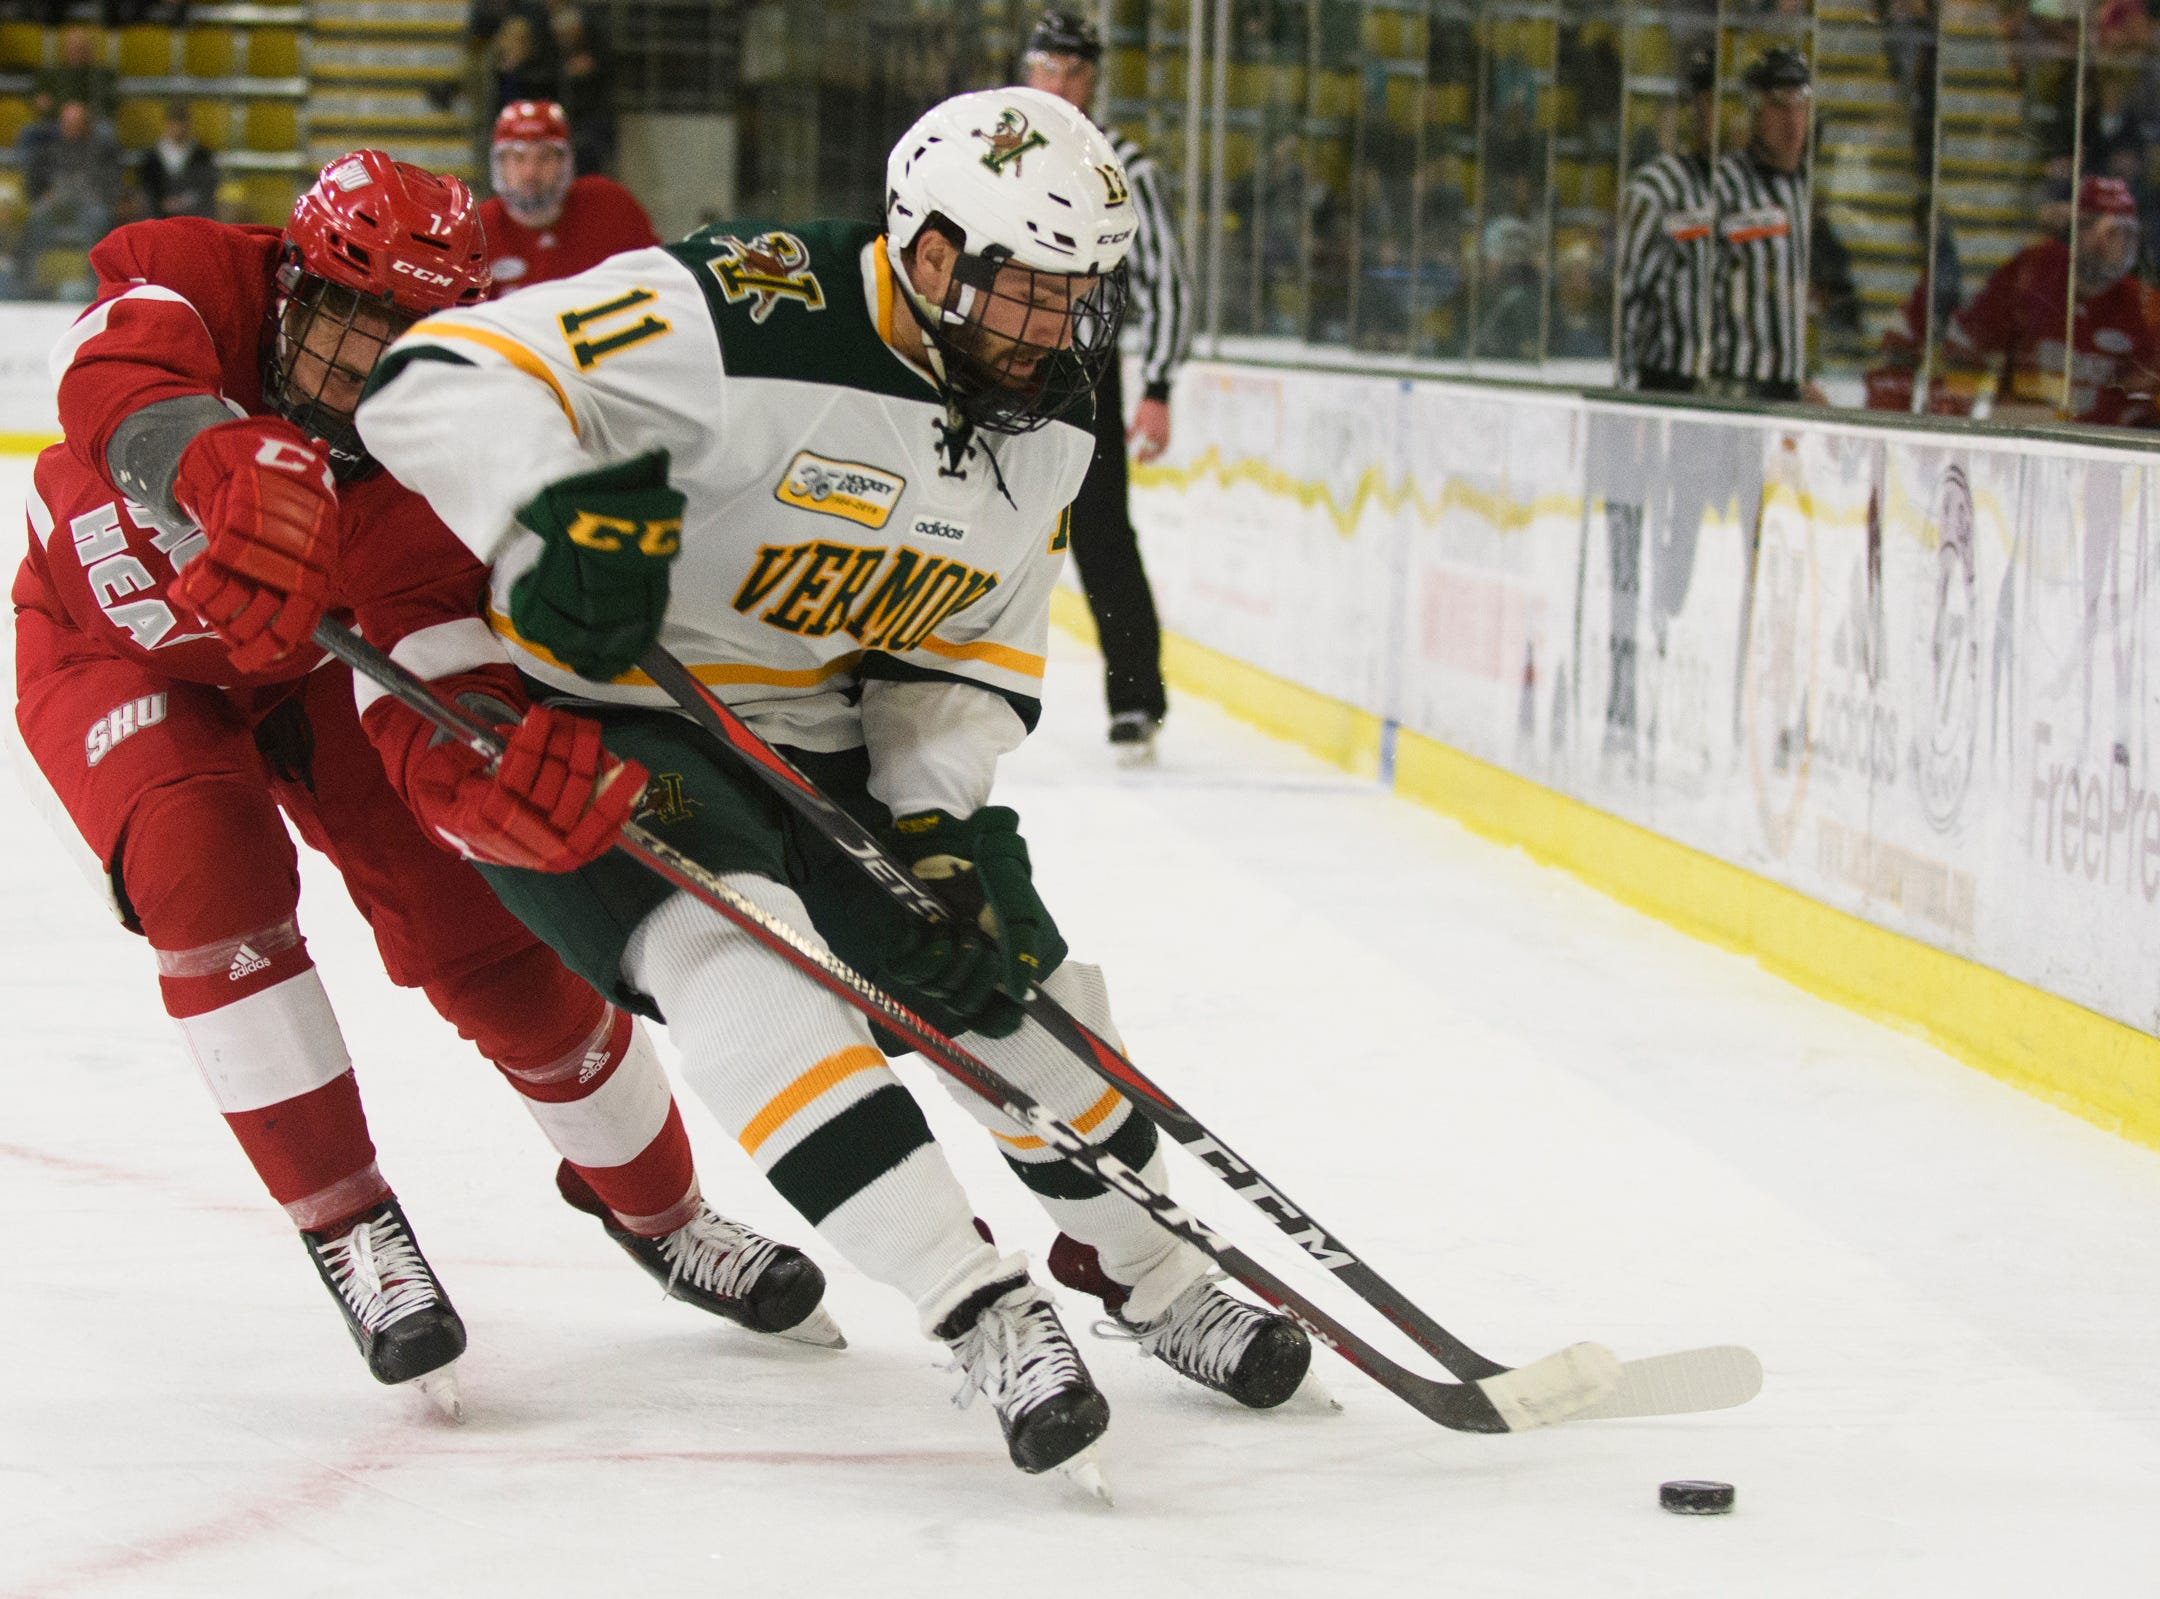 Vermont forward Conor O'Neil (11) battles for the puck with Sacred Heart's Drennen Atherton (1) during the men's hockey game between the Sacred Heart Pioneers and the Vermont Catamounts at Gutterson Field House on Friday night January 4, 2019 in Burlington.